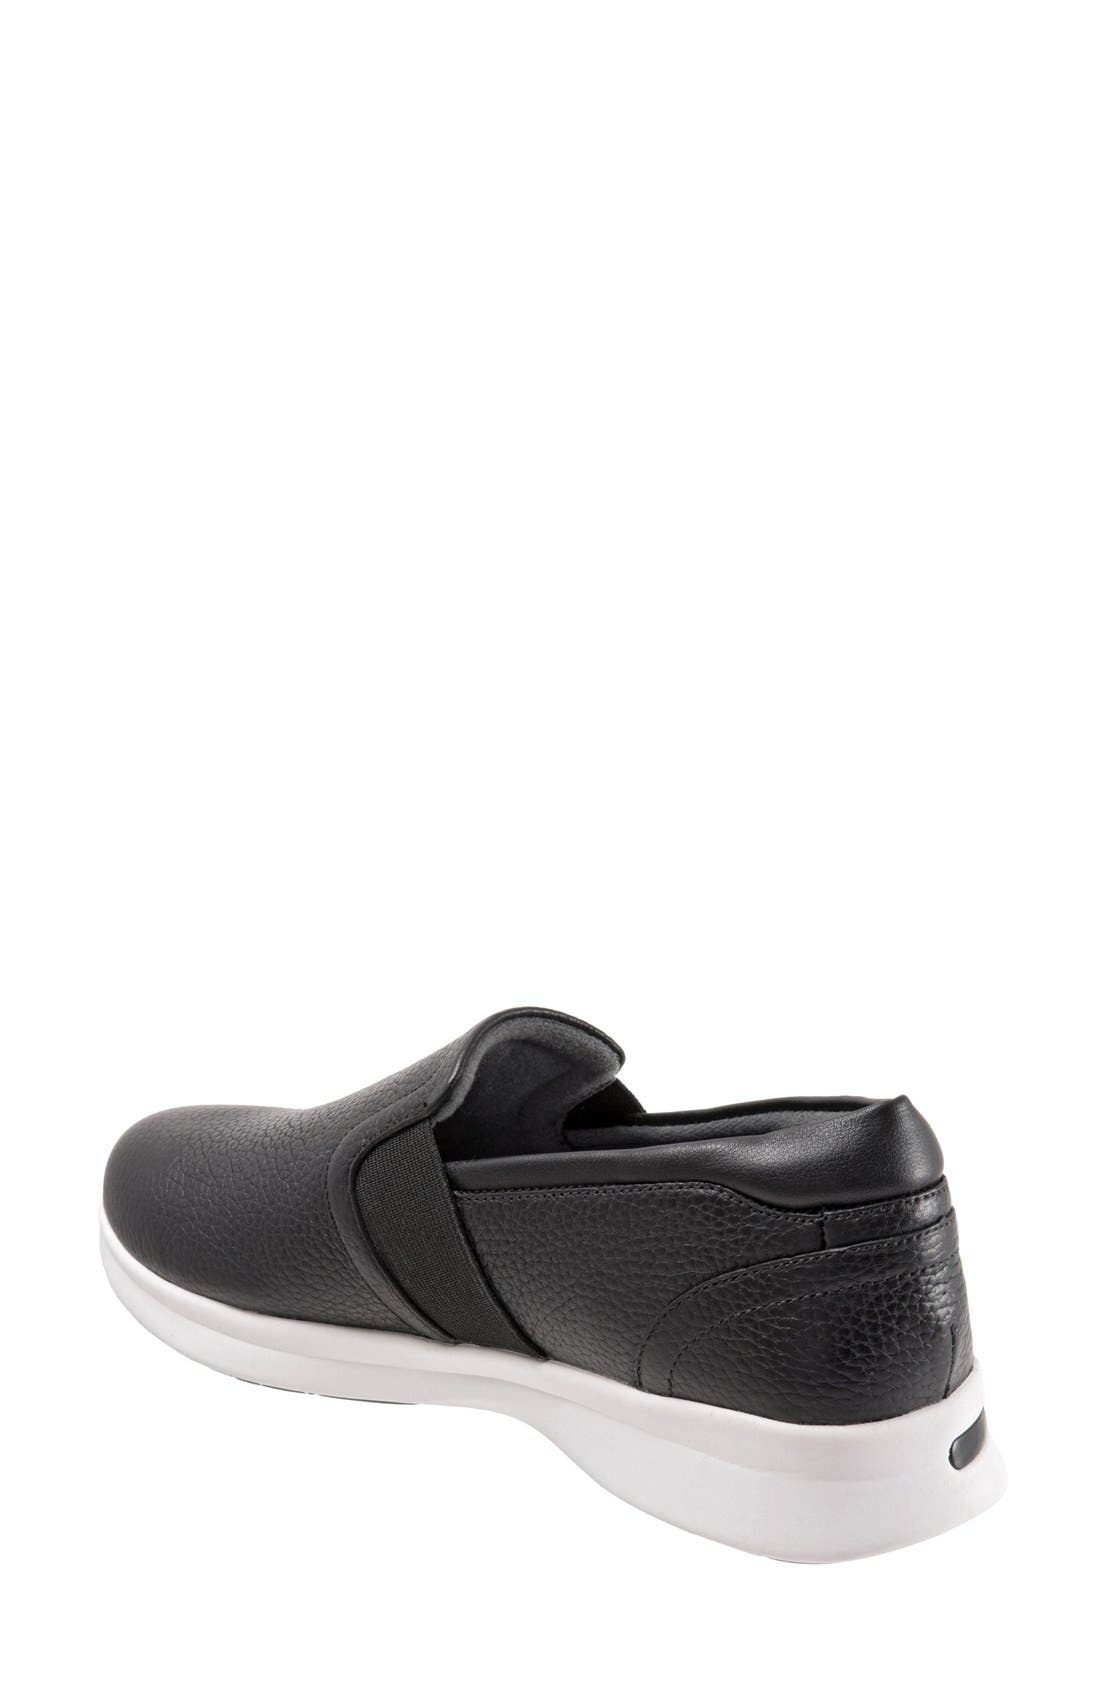 'Vantage' Slip-On Sneaker,                             Alternate thumbnail 2, color,                             001